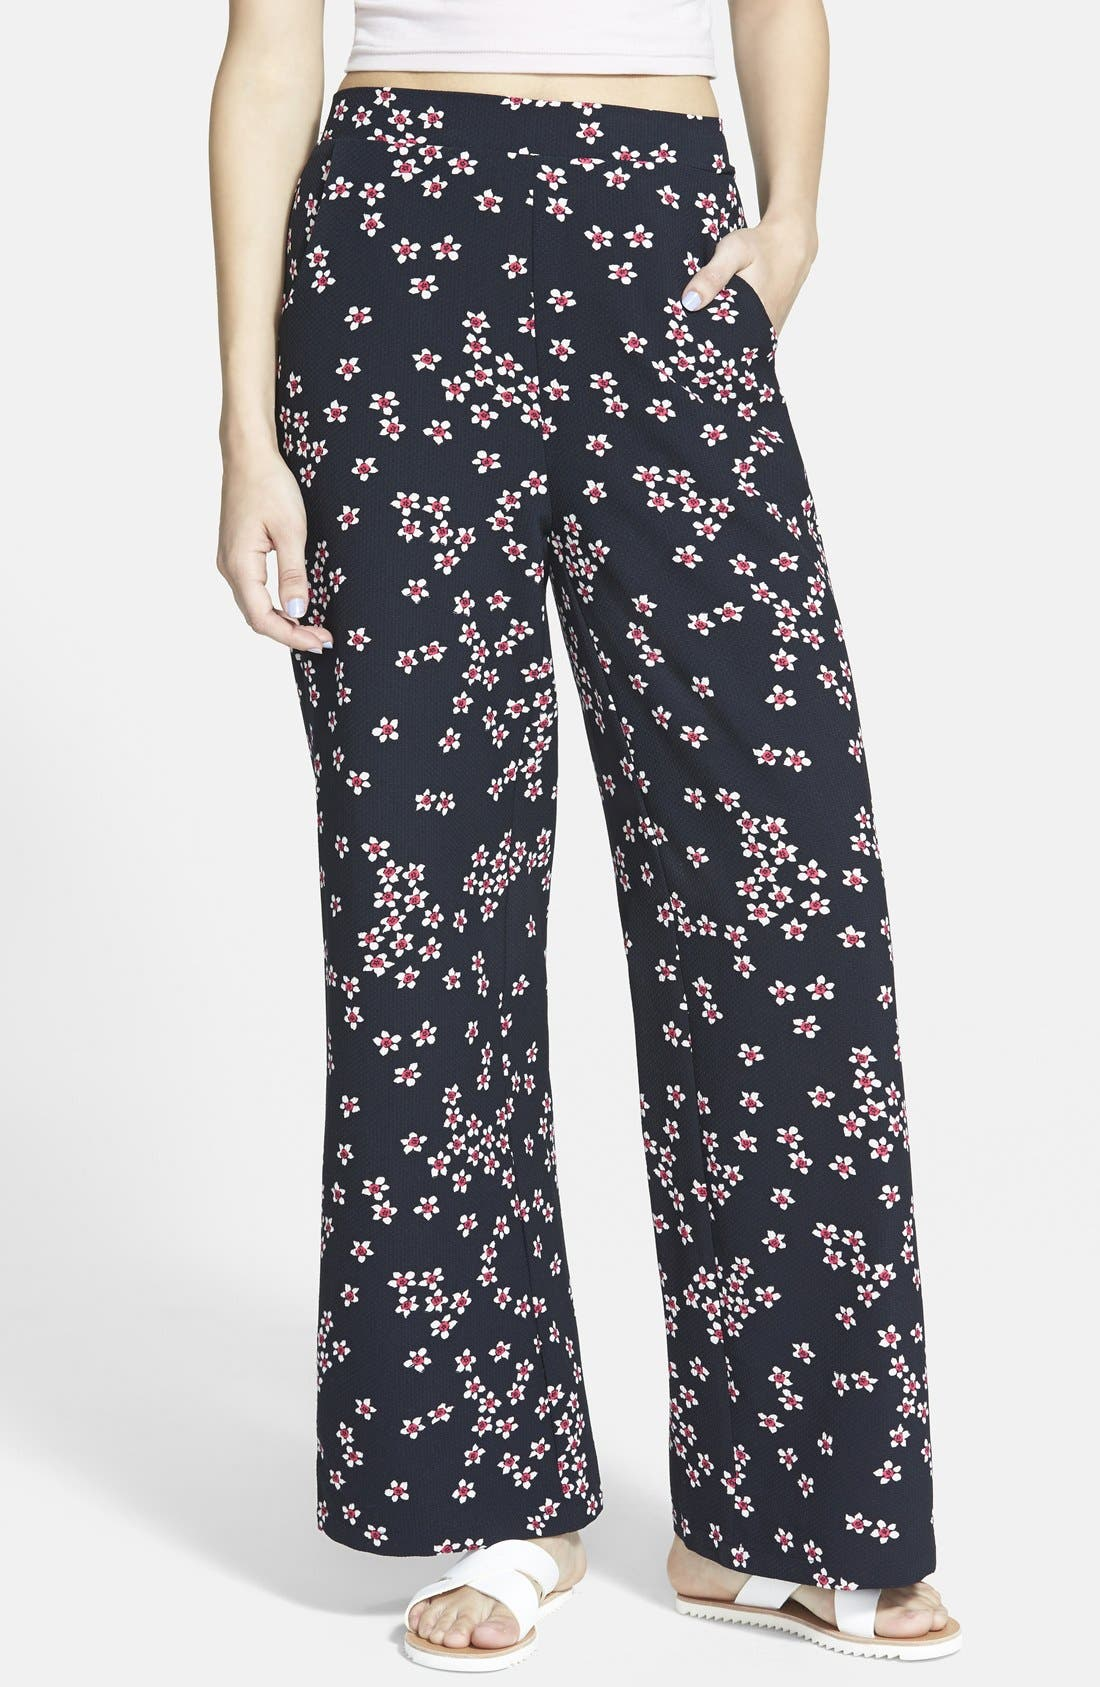 Alternate Image 1 Selected - Sugarhill Boutique Floral Print Palazzo Pants (Juniors)